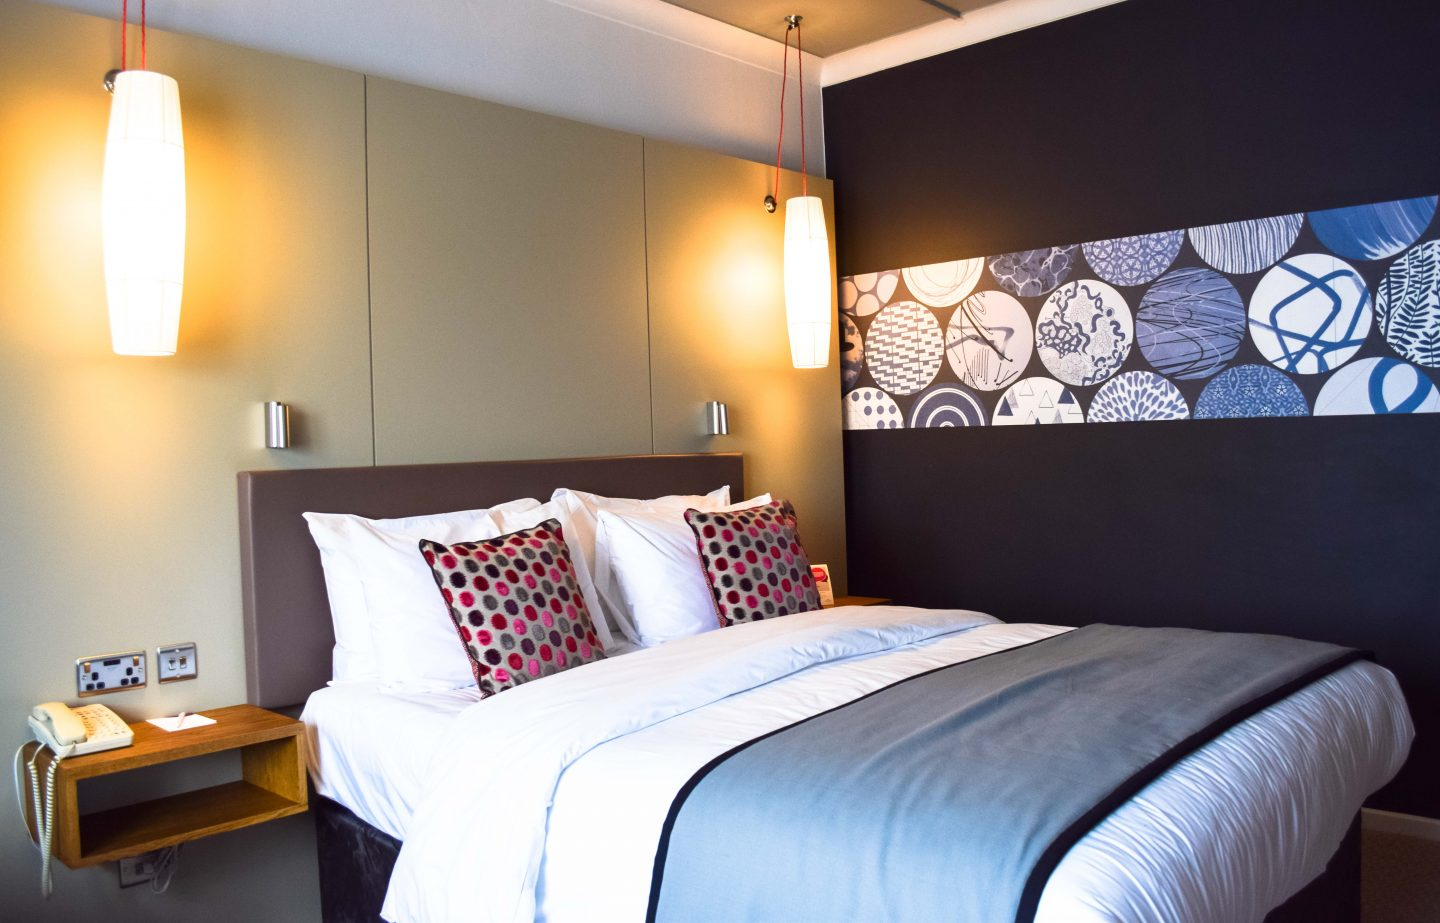 My review on Crowne Plaza Solihull